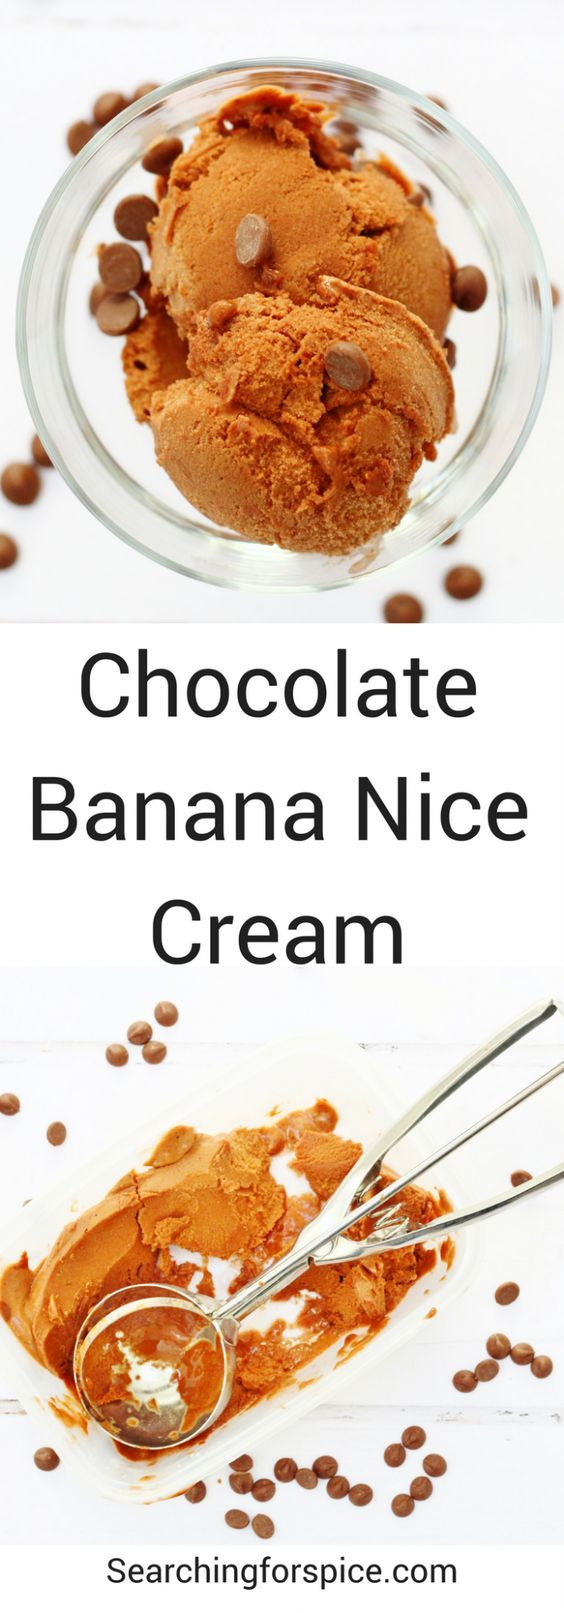 Chocolate banana nice cream. Three ingredient frozen dessert made with bananas, cocoa powder and almond milk. It's healthy, vegan with no added sugar so it's totally guilt-free #niccream #icecream #bananas #chocolate #healthydessert #noaddedsugar